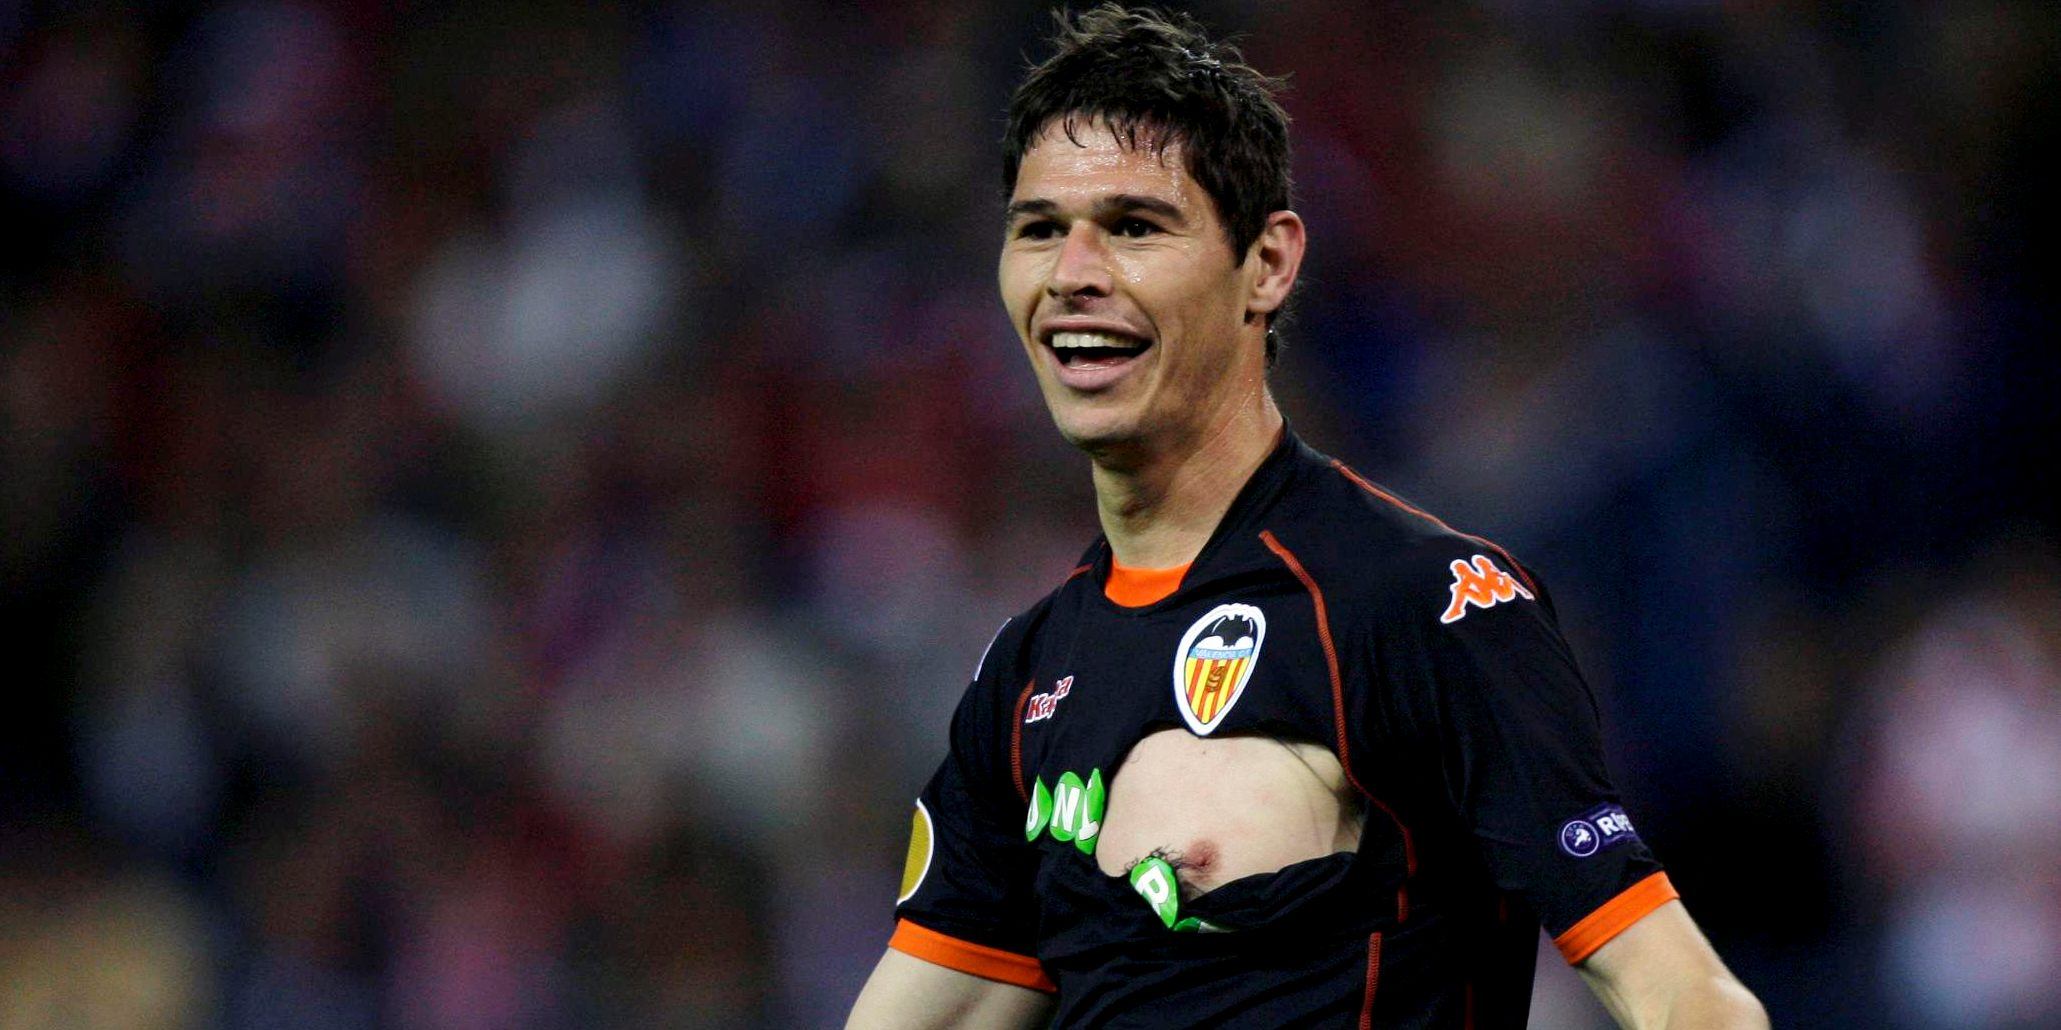 Valencia-Atletico – a rivalry between Penev's fists and Zigic' tits